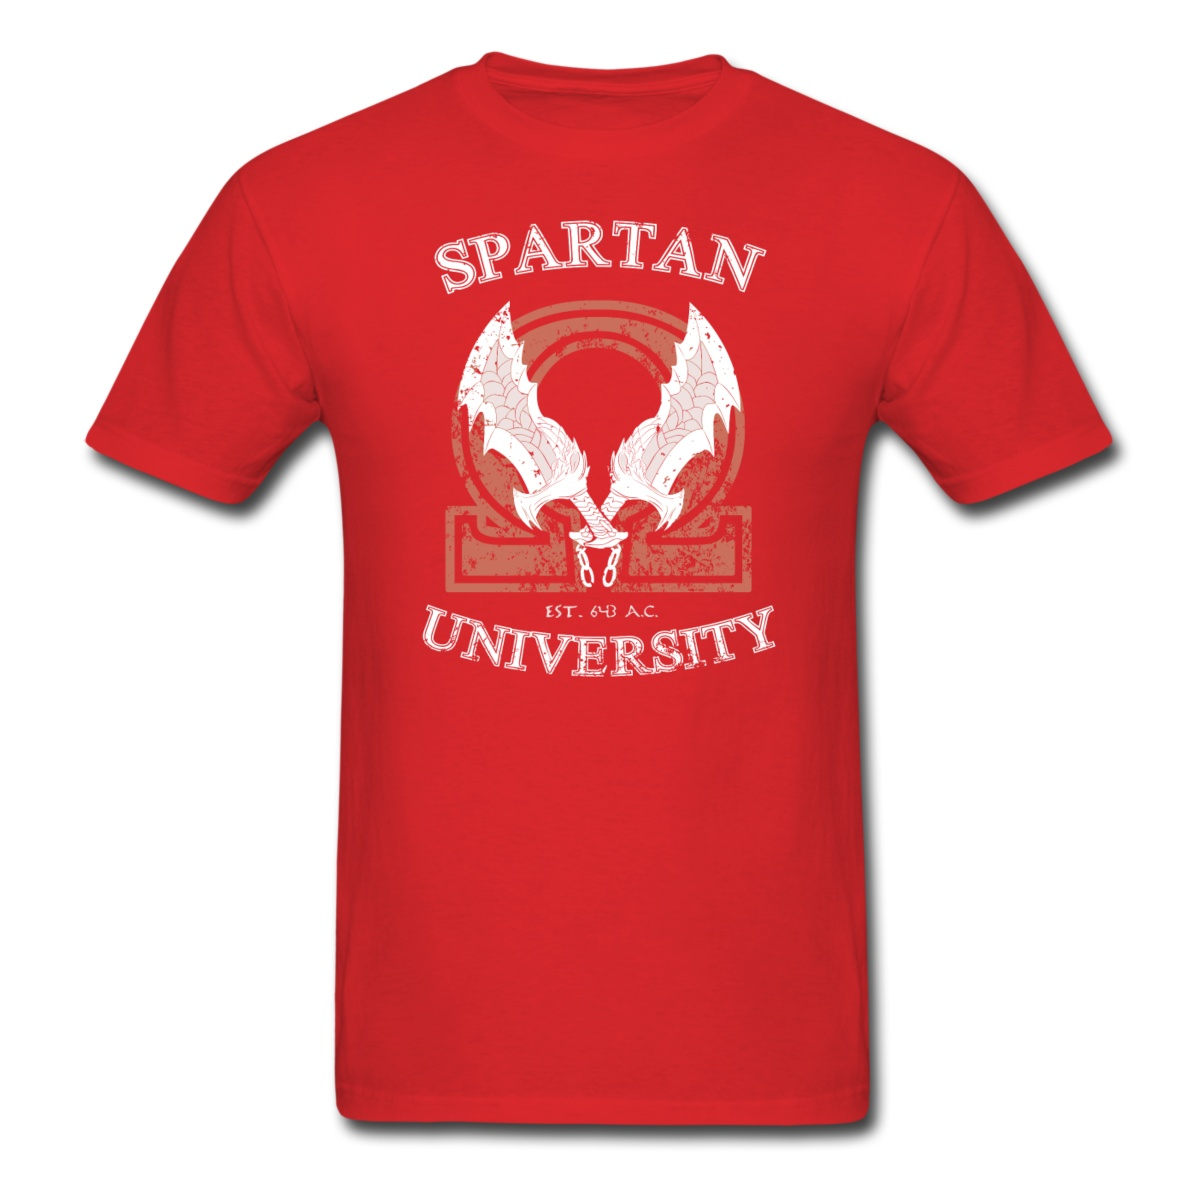 Spartan University God of War T-shirt